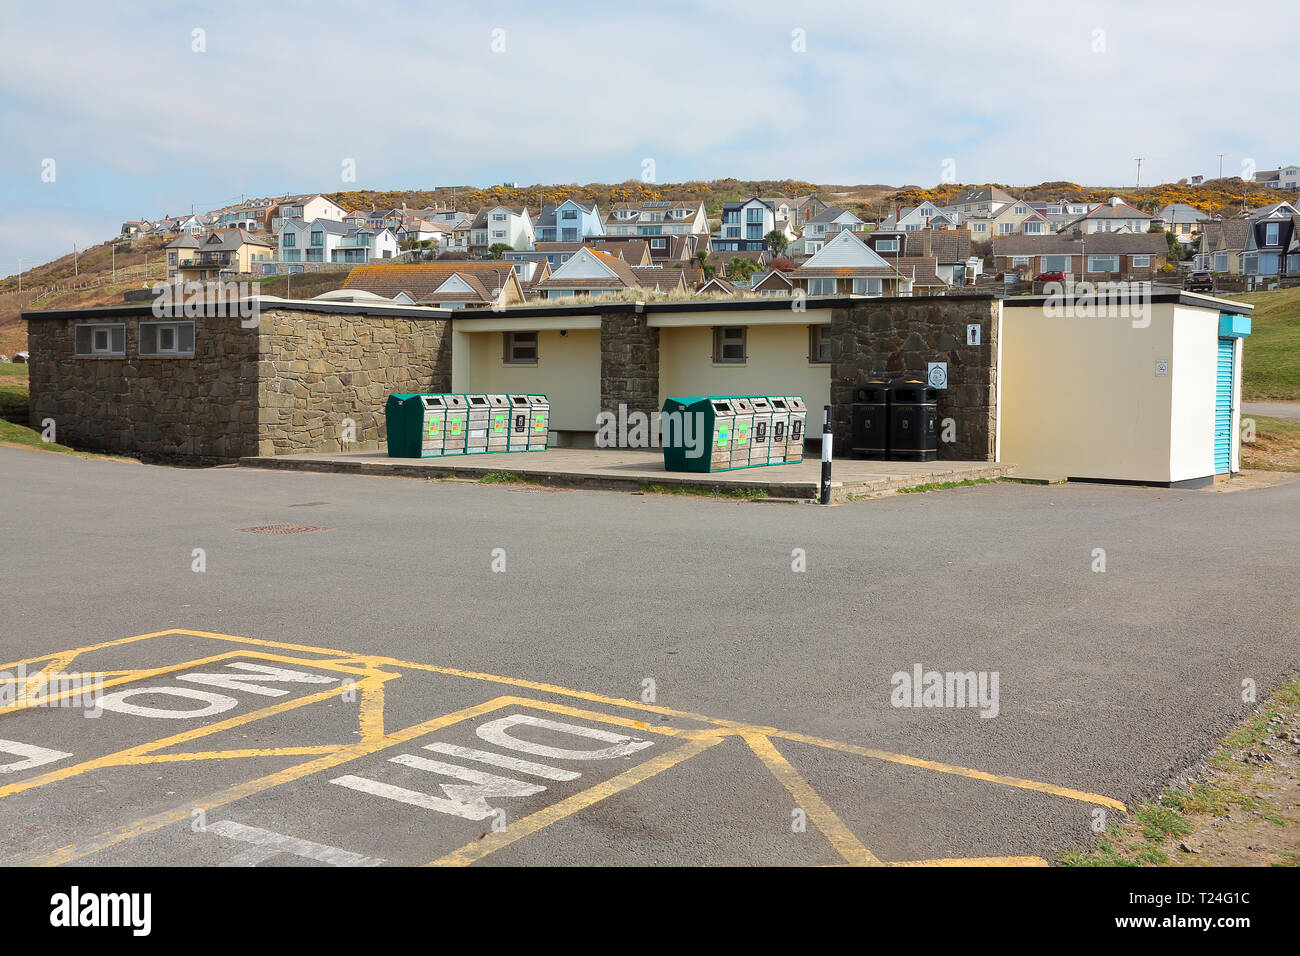 The toilet block in Ogmore by sea beach car park with shuttered doors and a variety of waste bins outside as the beach area is very busy in summer. - Stock Image